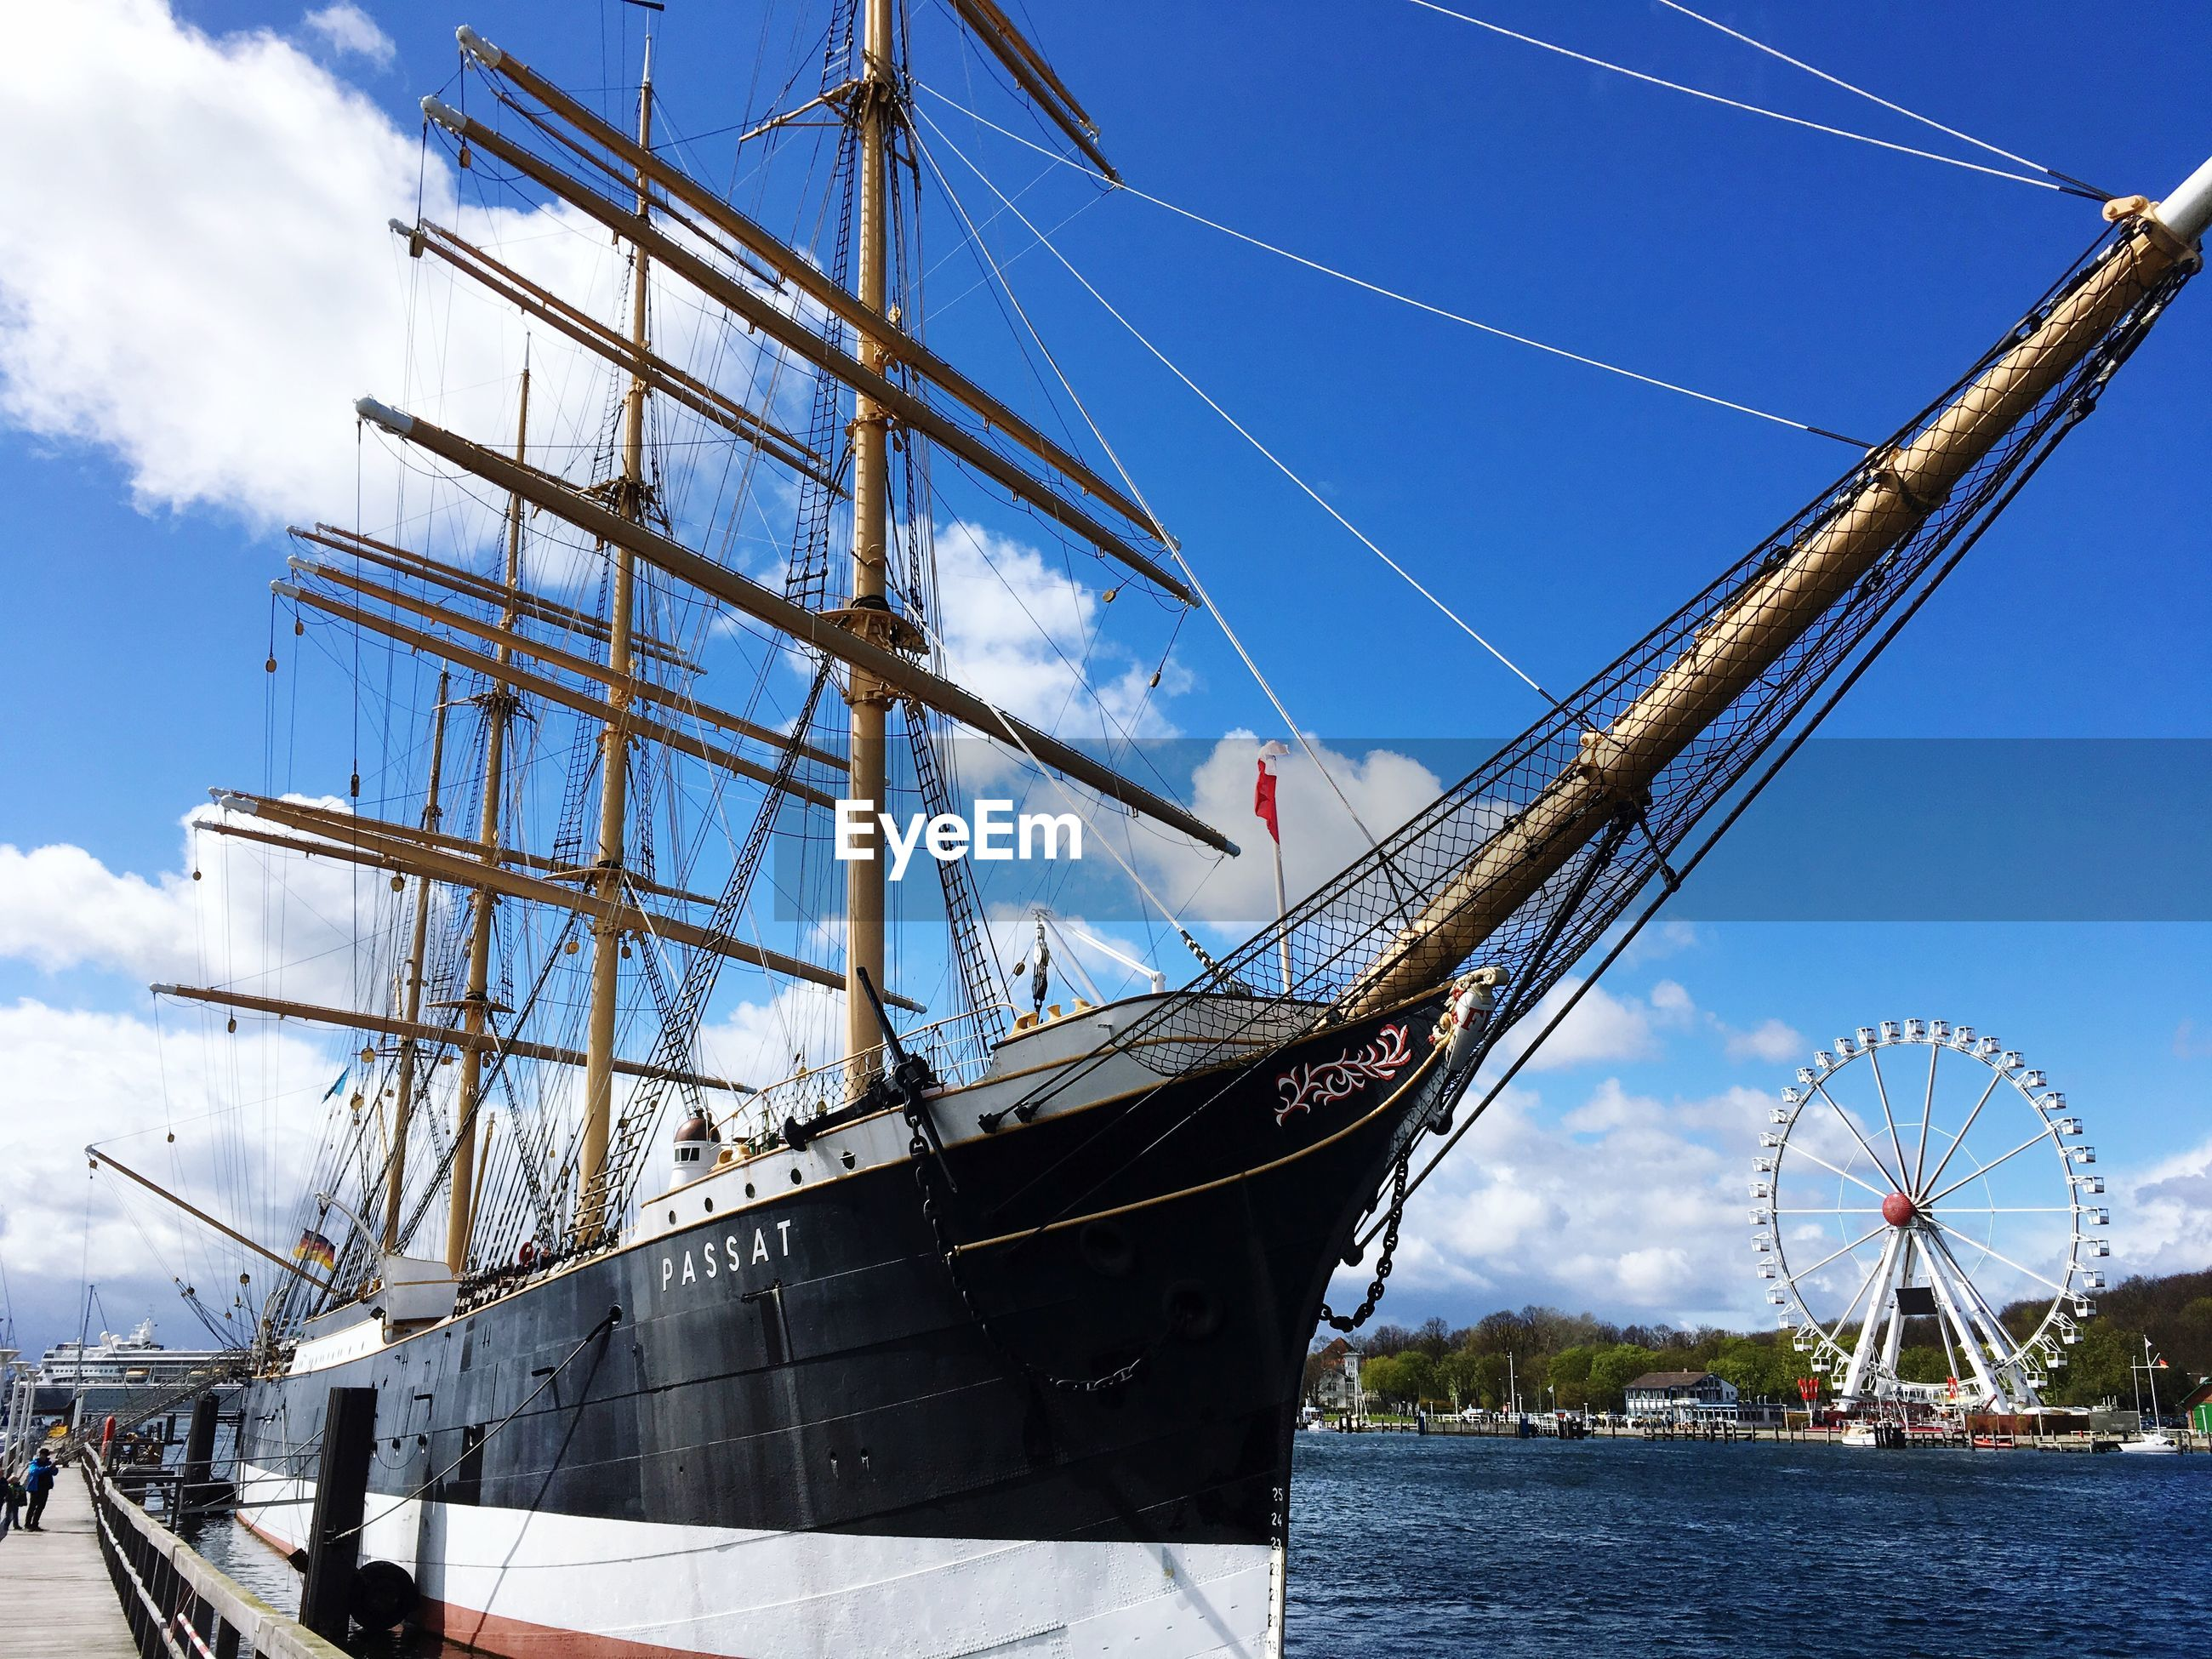 nautical vessel, sky, transportation, mode of transportation, sailboat, day, ship, nature, no people, cloud - sky, water, mast, low angle view, architecture, outdoors, sea, pole, rope, built structure